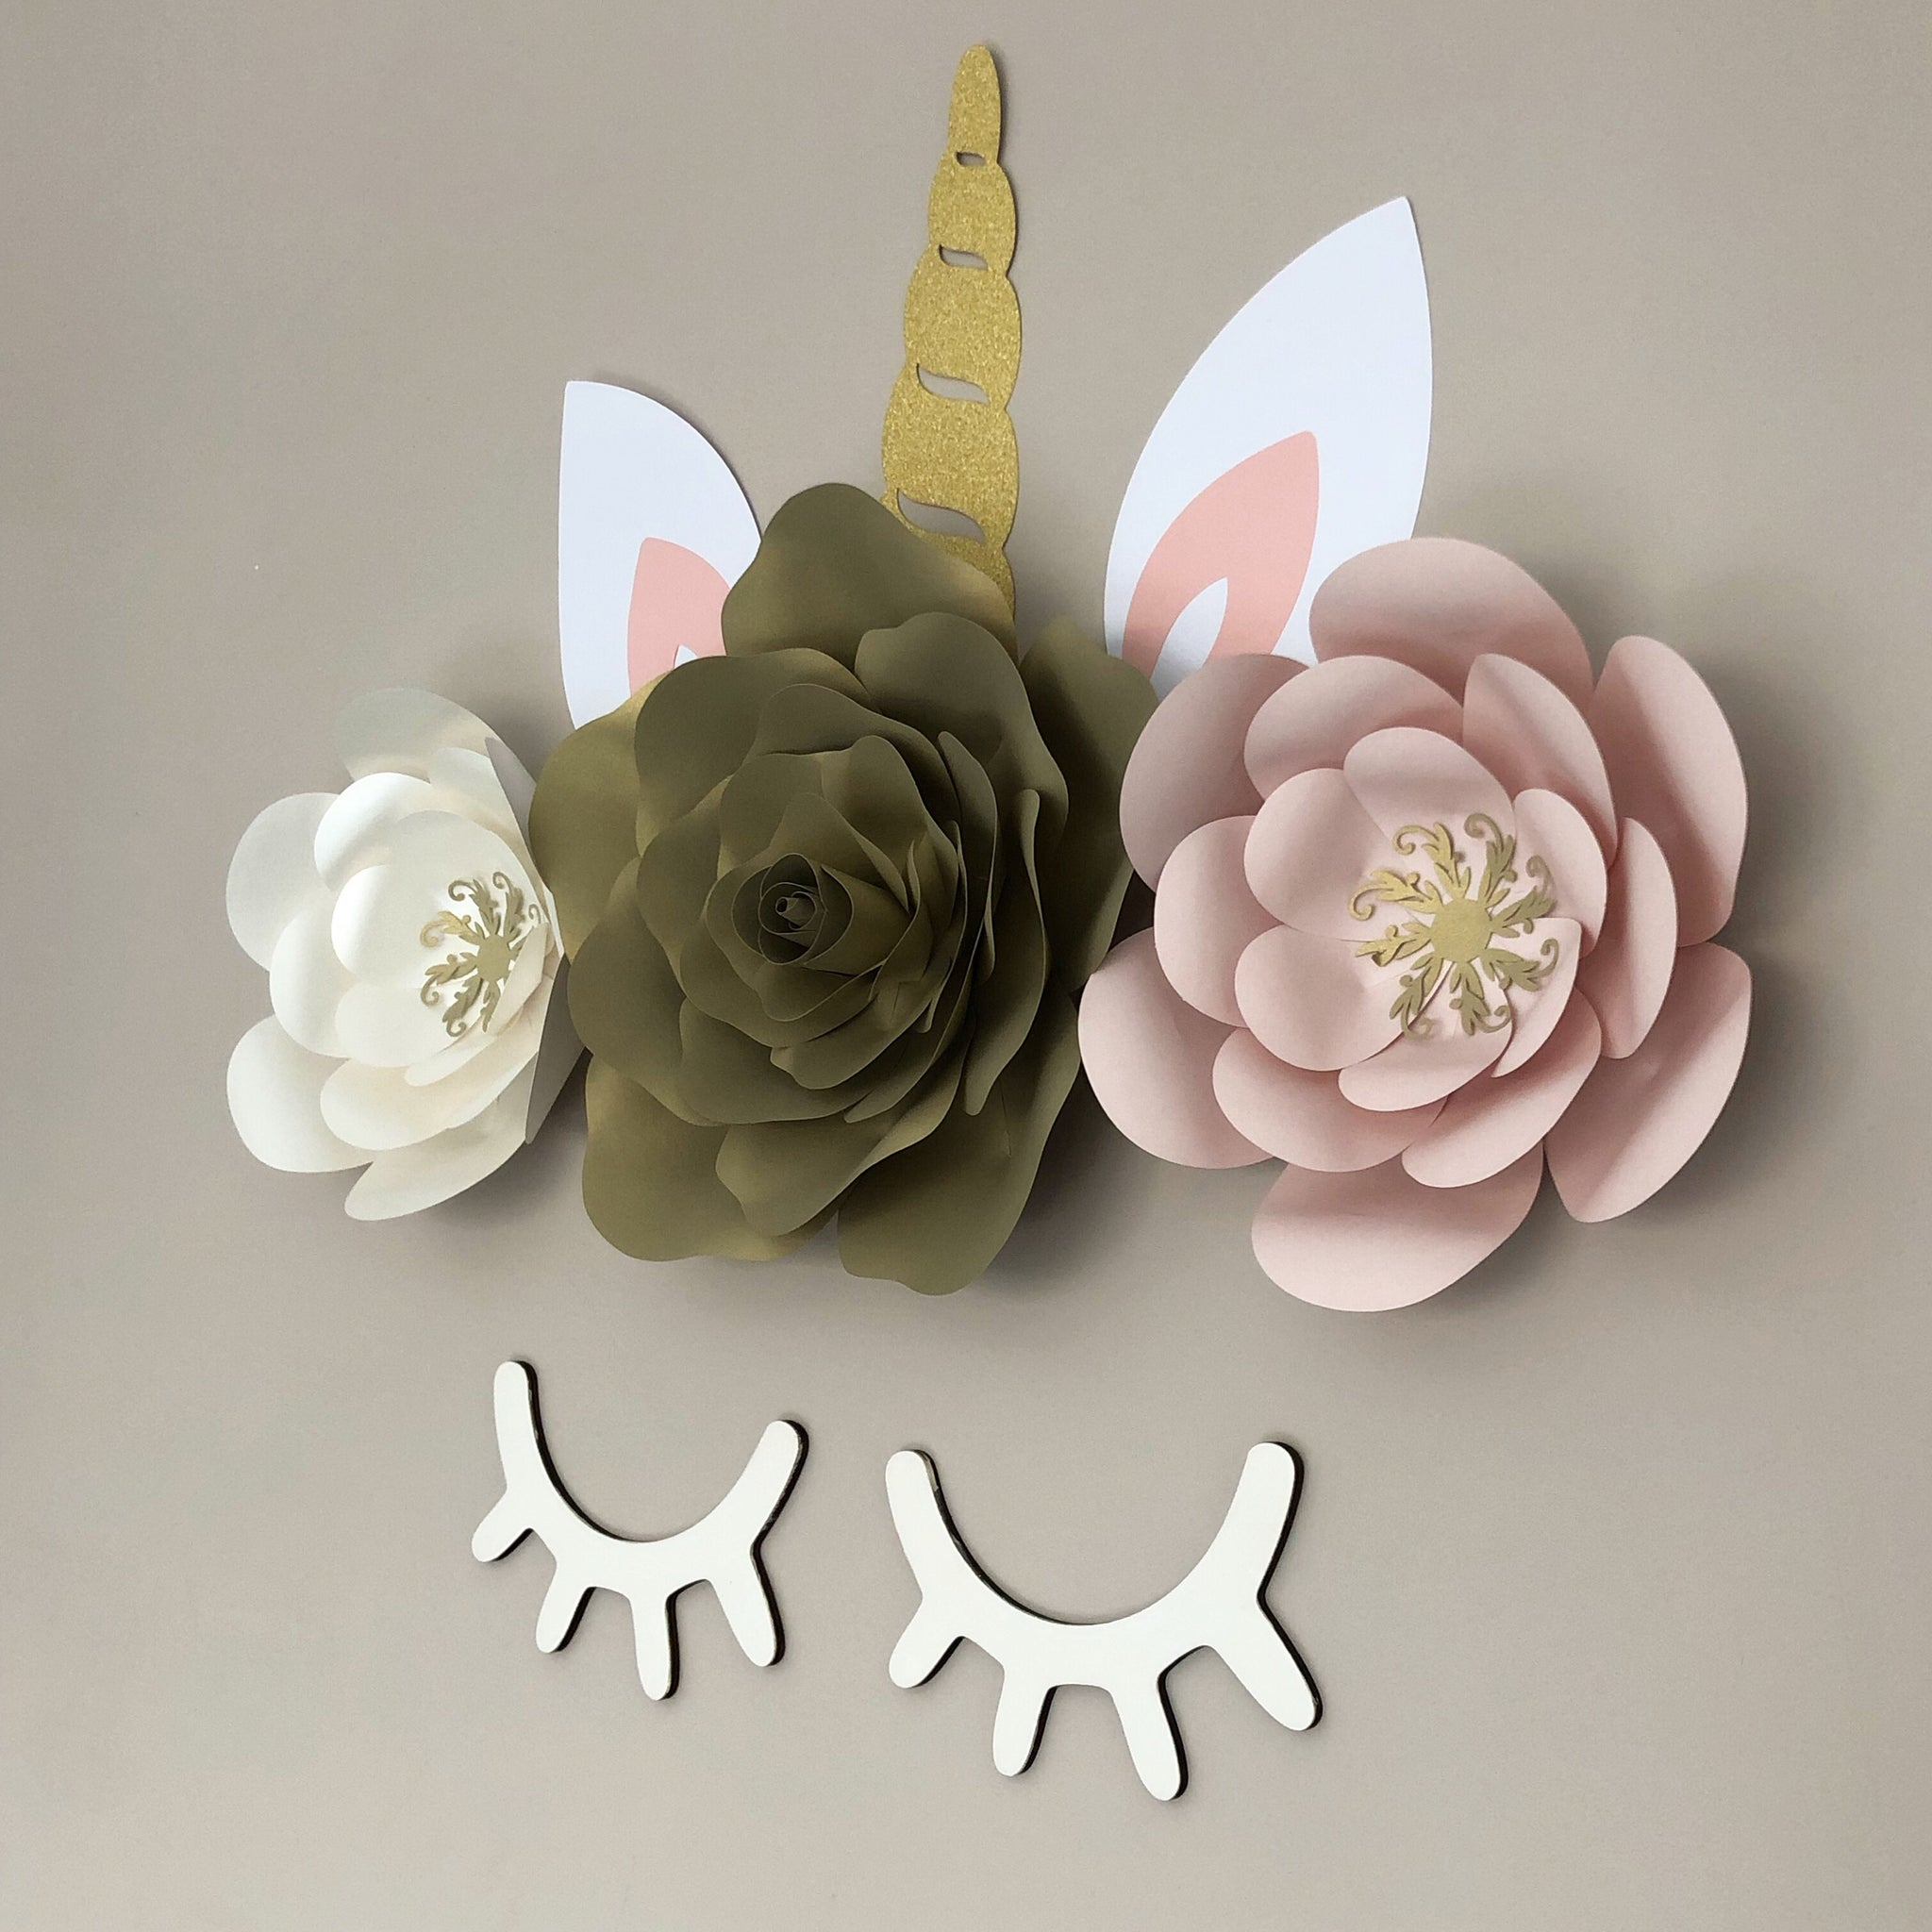 Unicorn paper flower decor with wooden eyelashes and rose middle